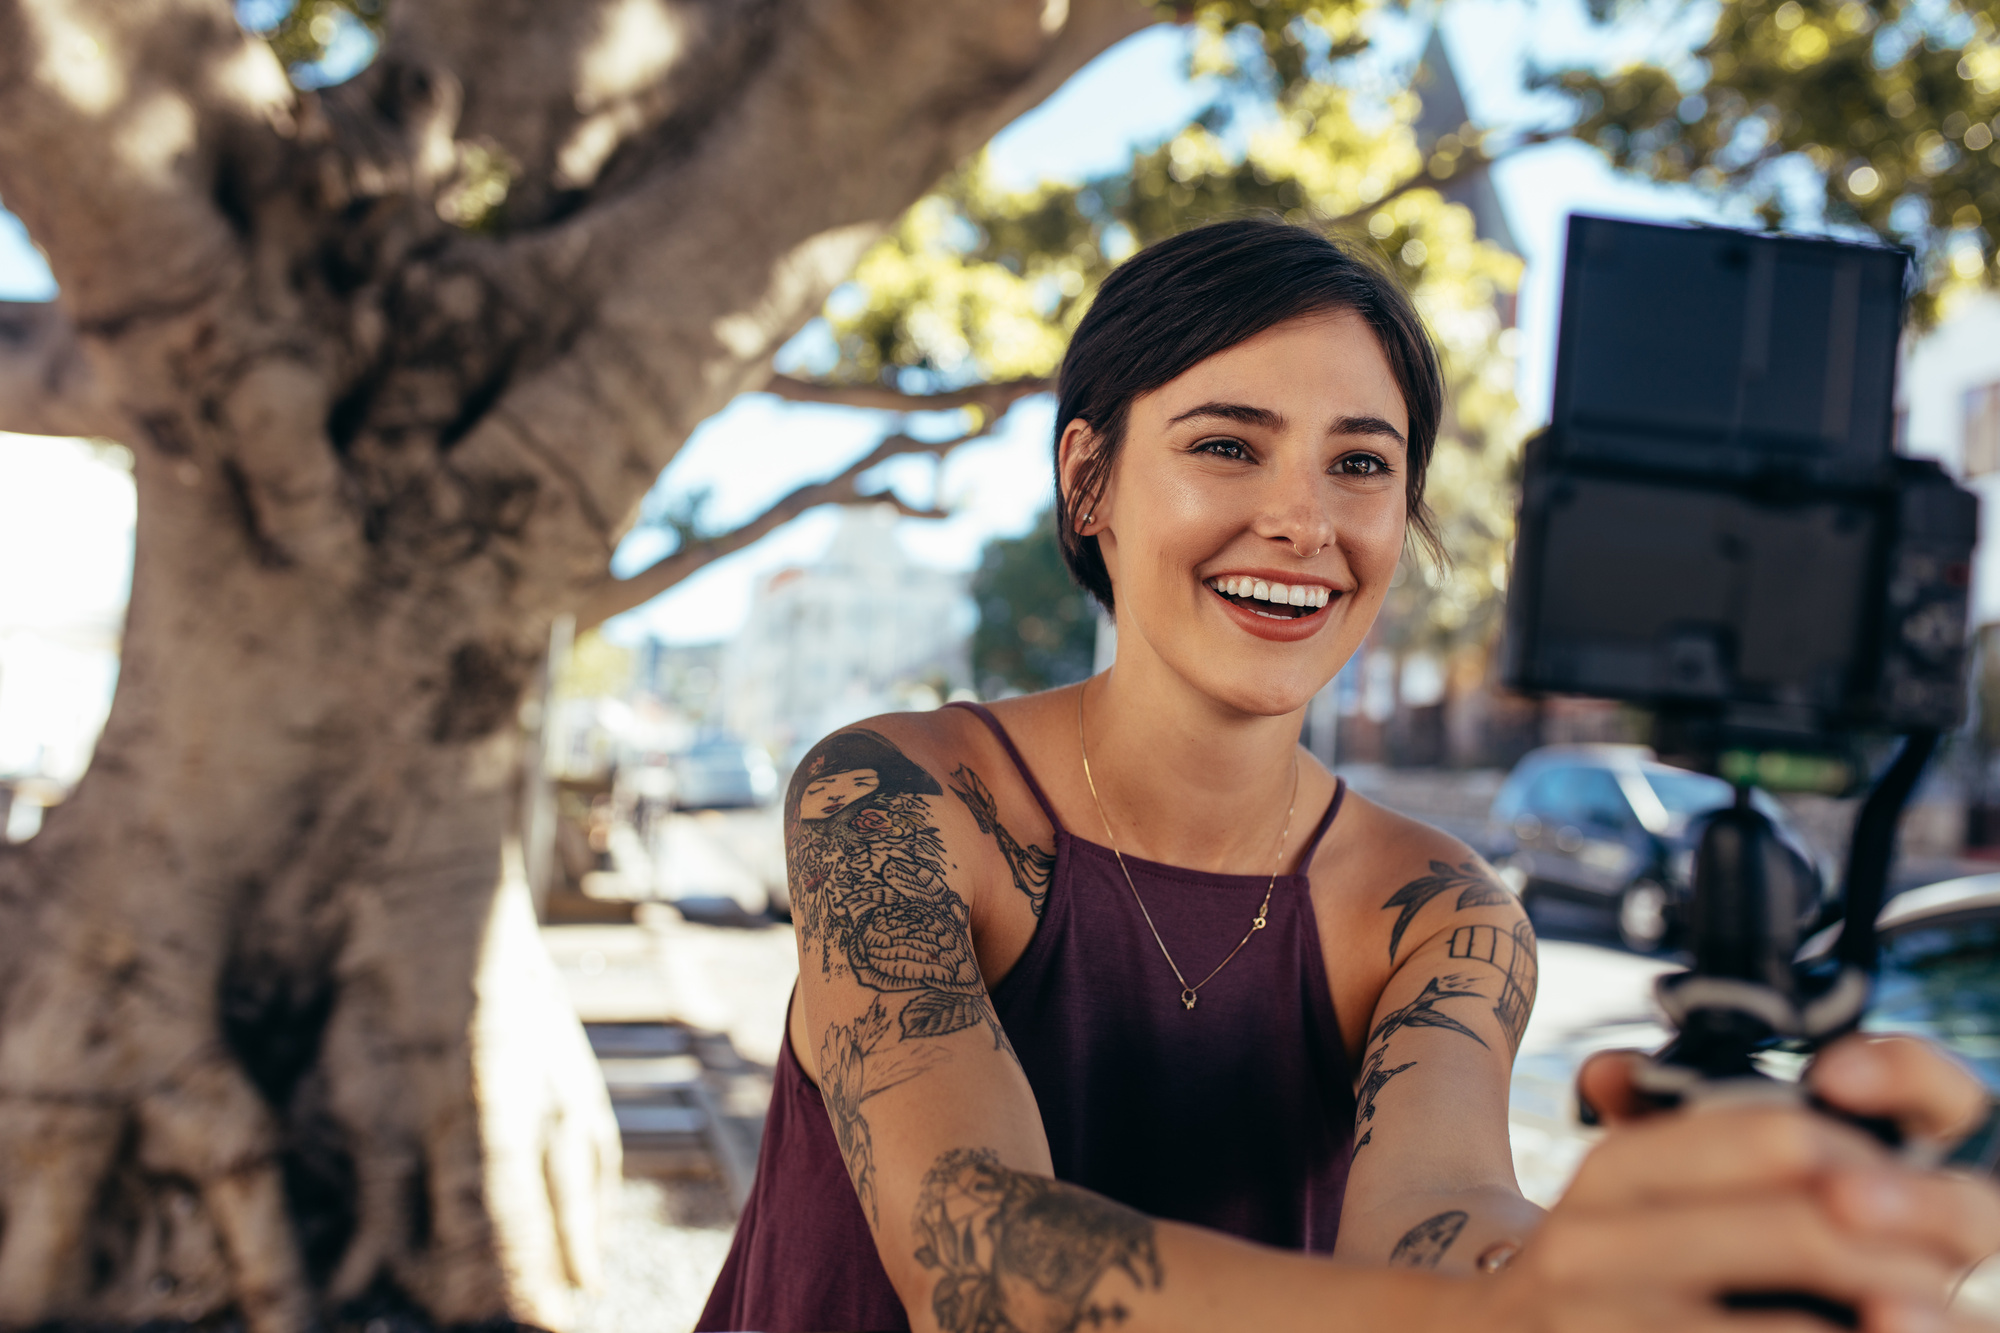 5 Quick Tips On How to Become a Social Media Influencer